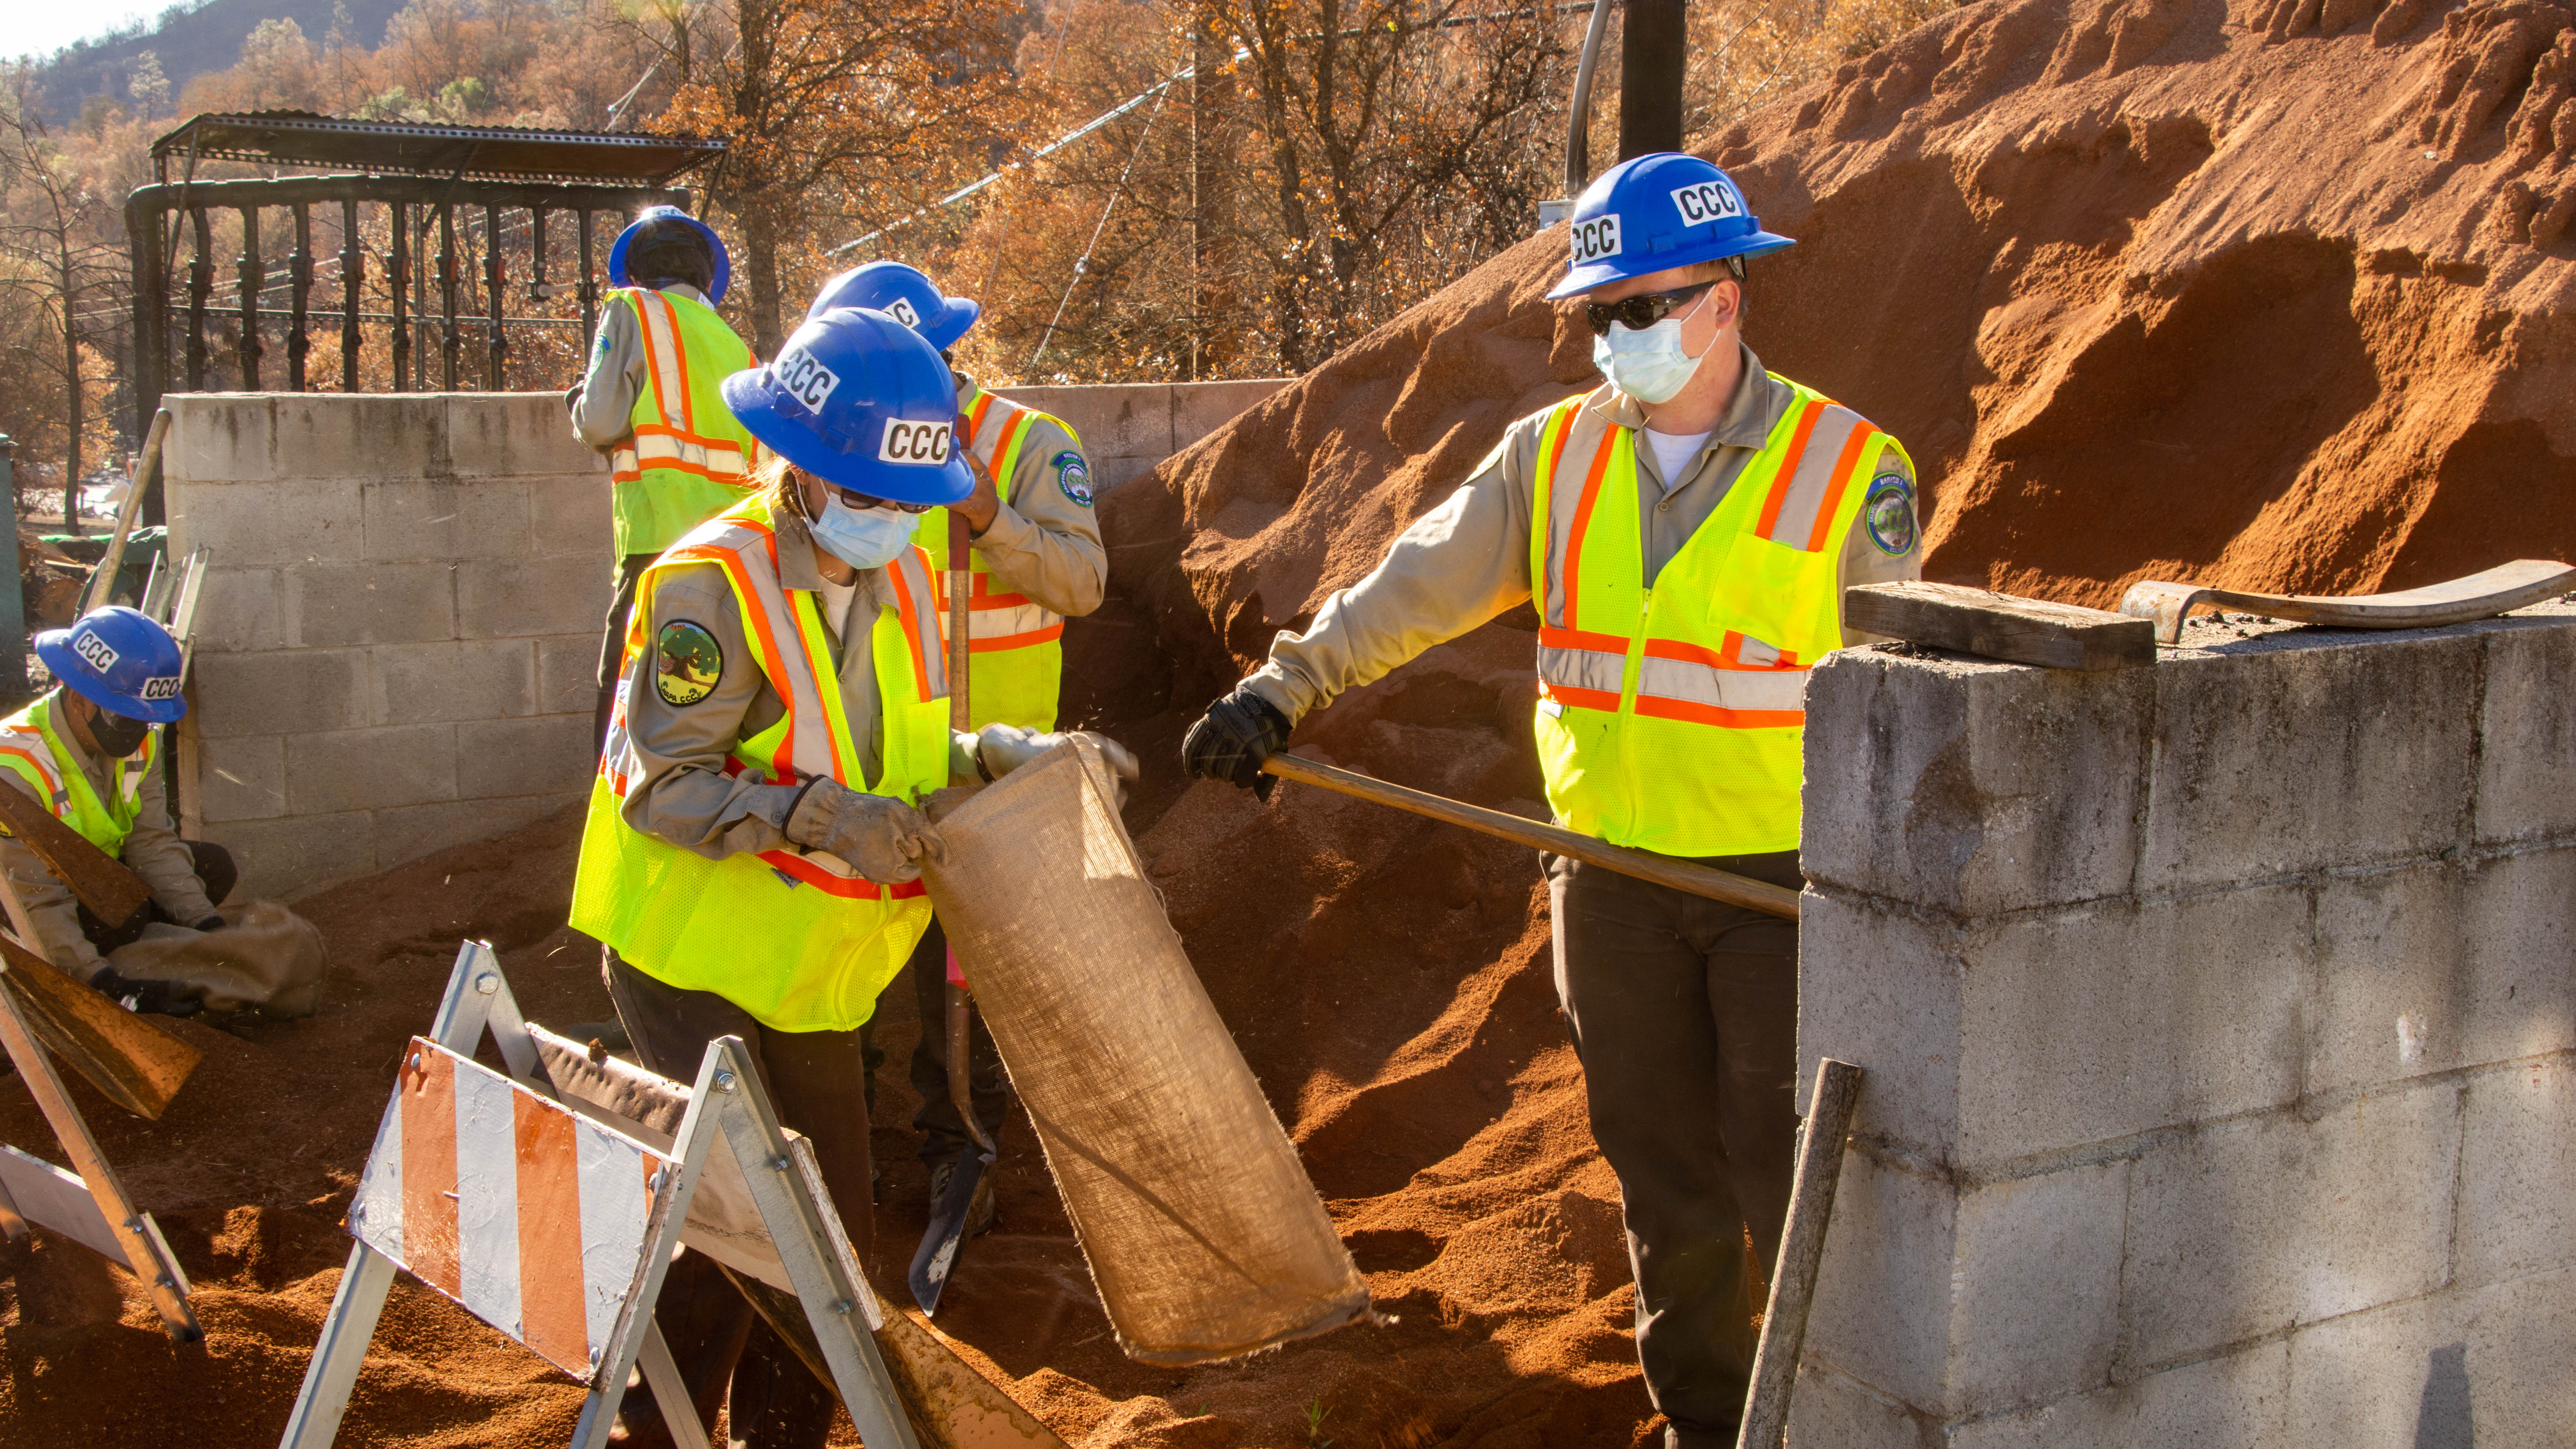 Corpsmembes wearing yellow safety jackets and blue helmets use shovels to fill sand bags.